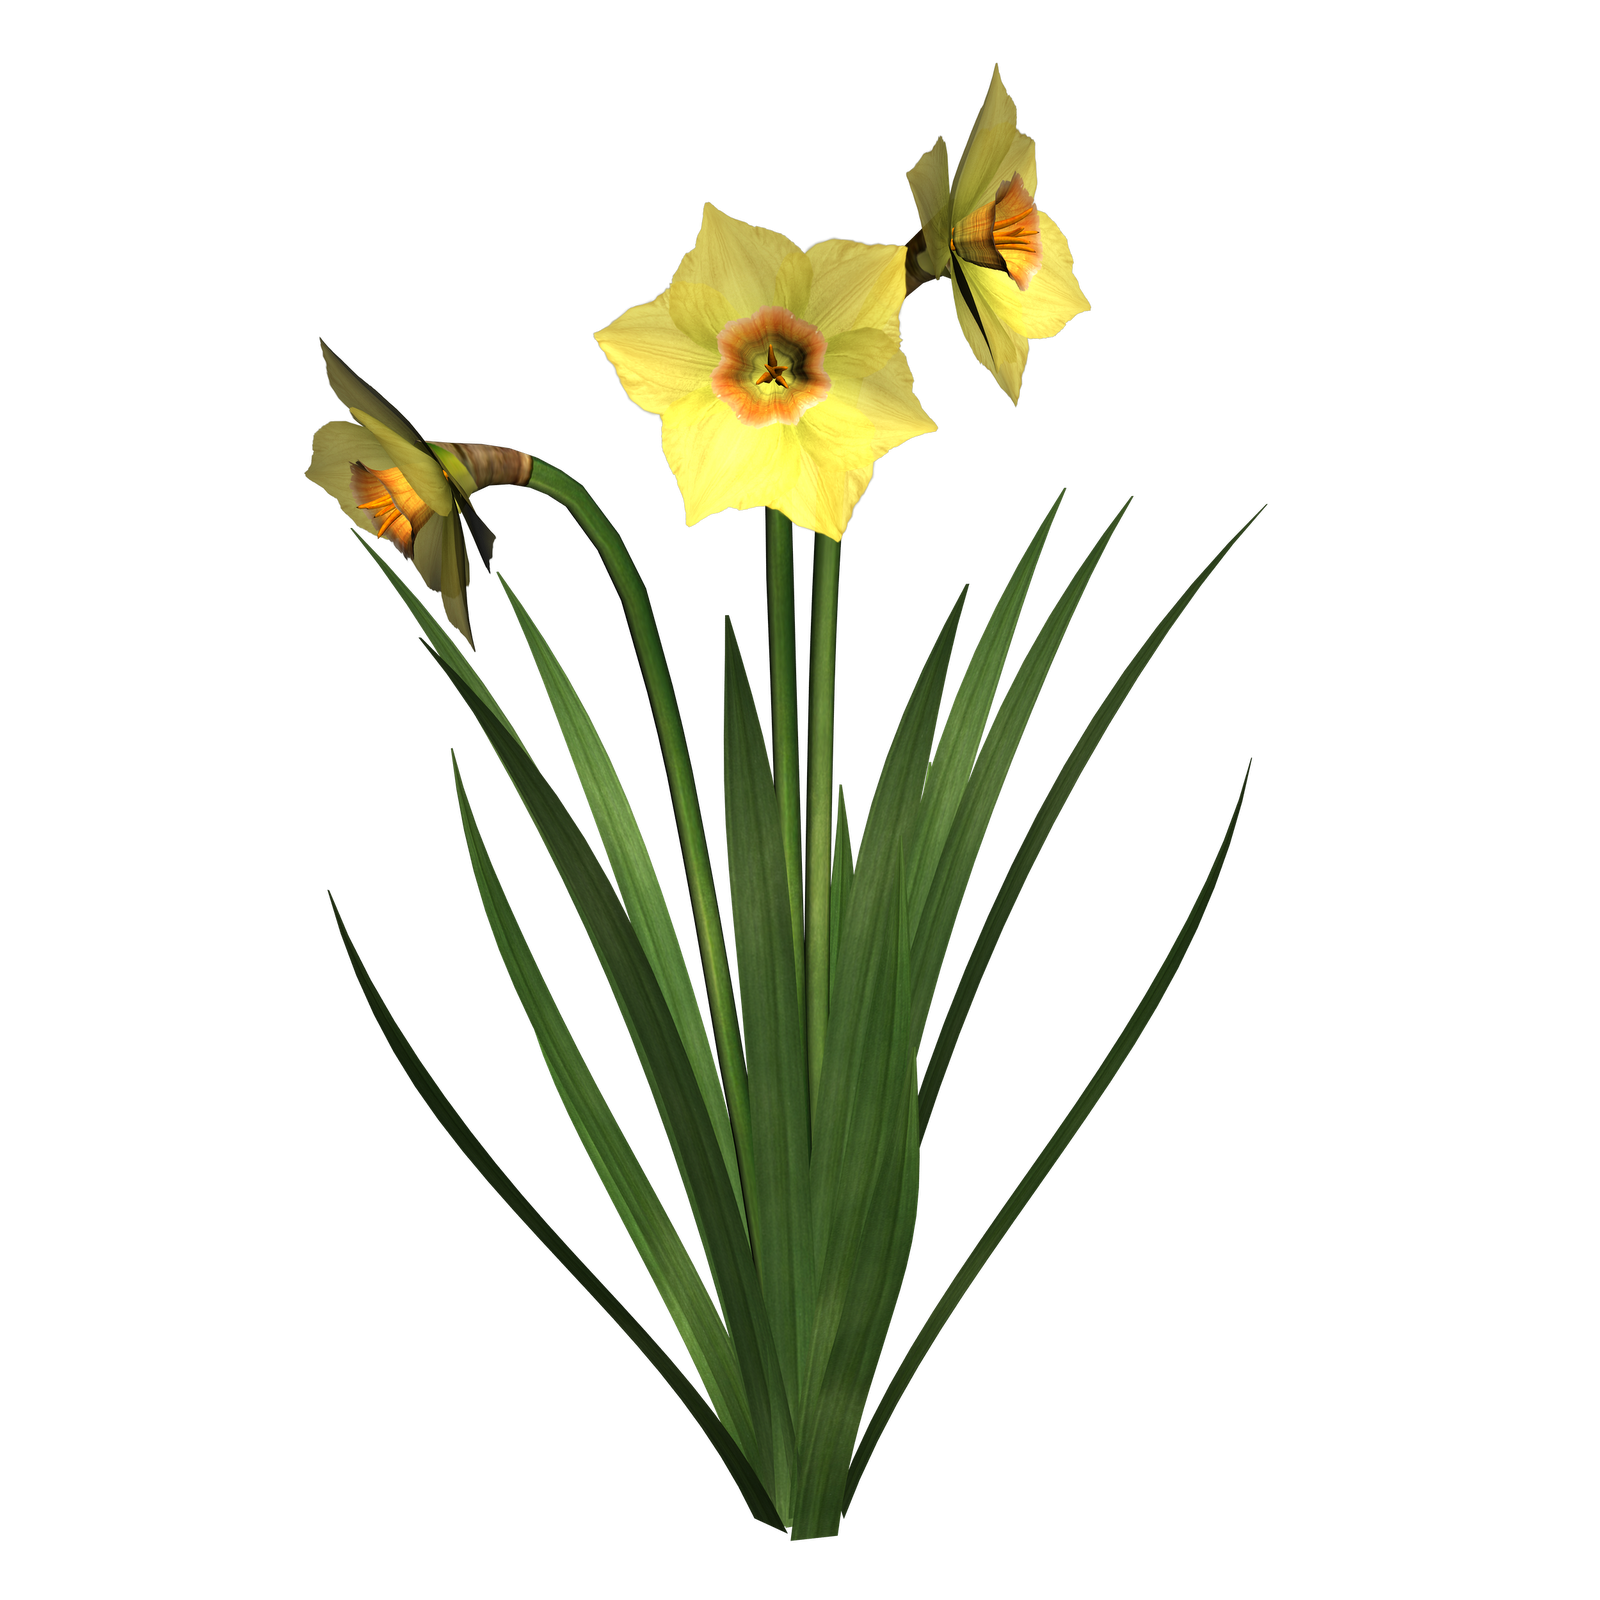 Daffodil clipart yellow daffodil. Free daffodils pictures download